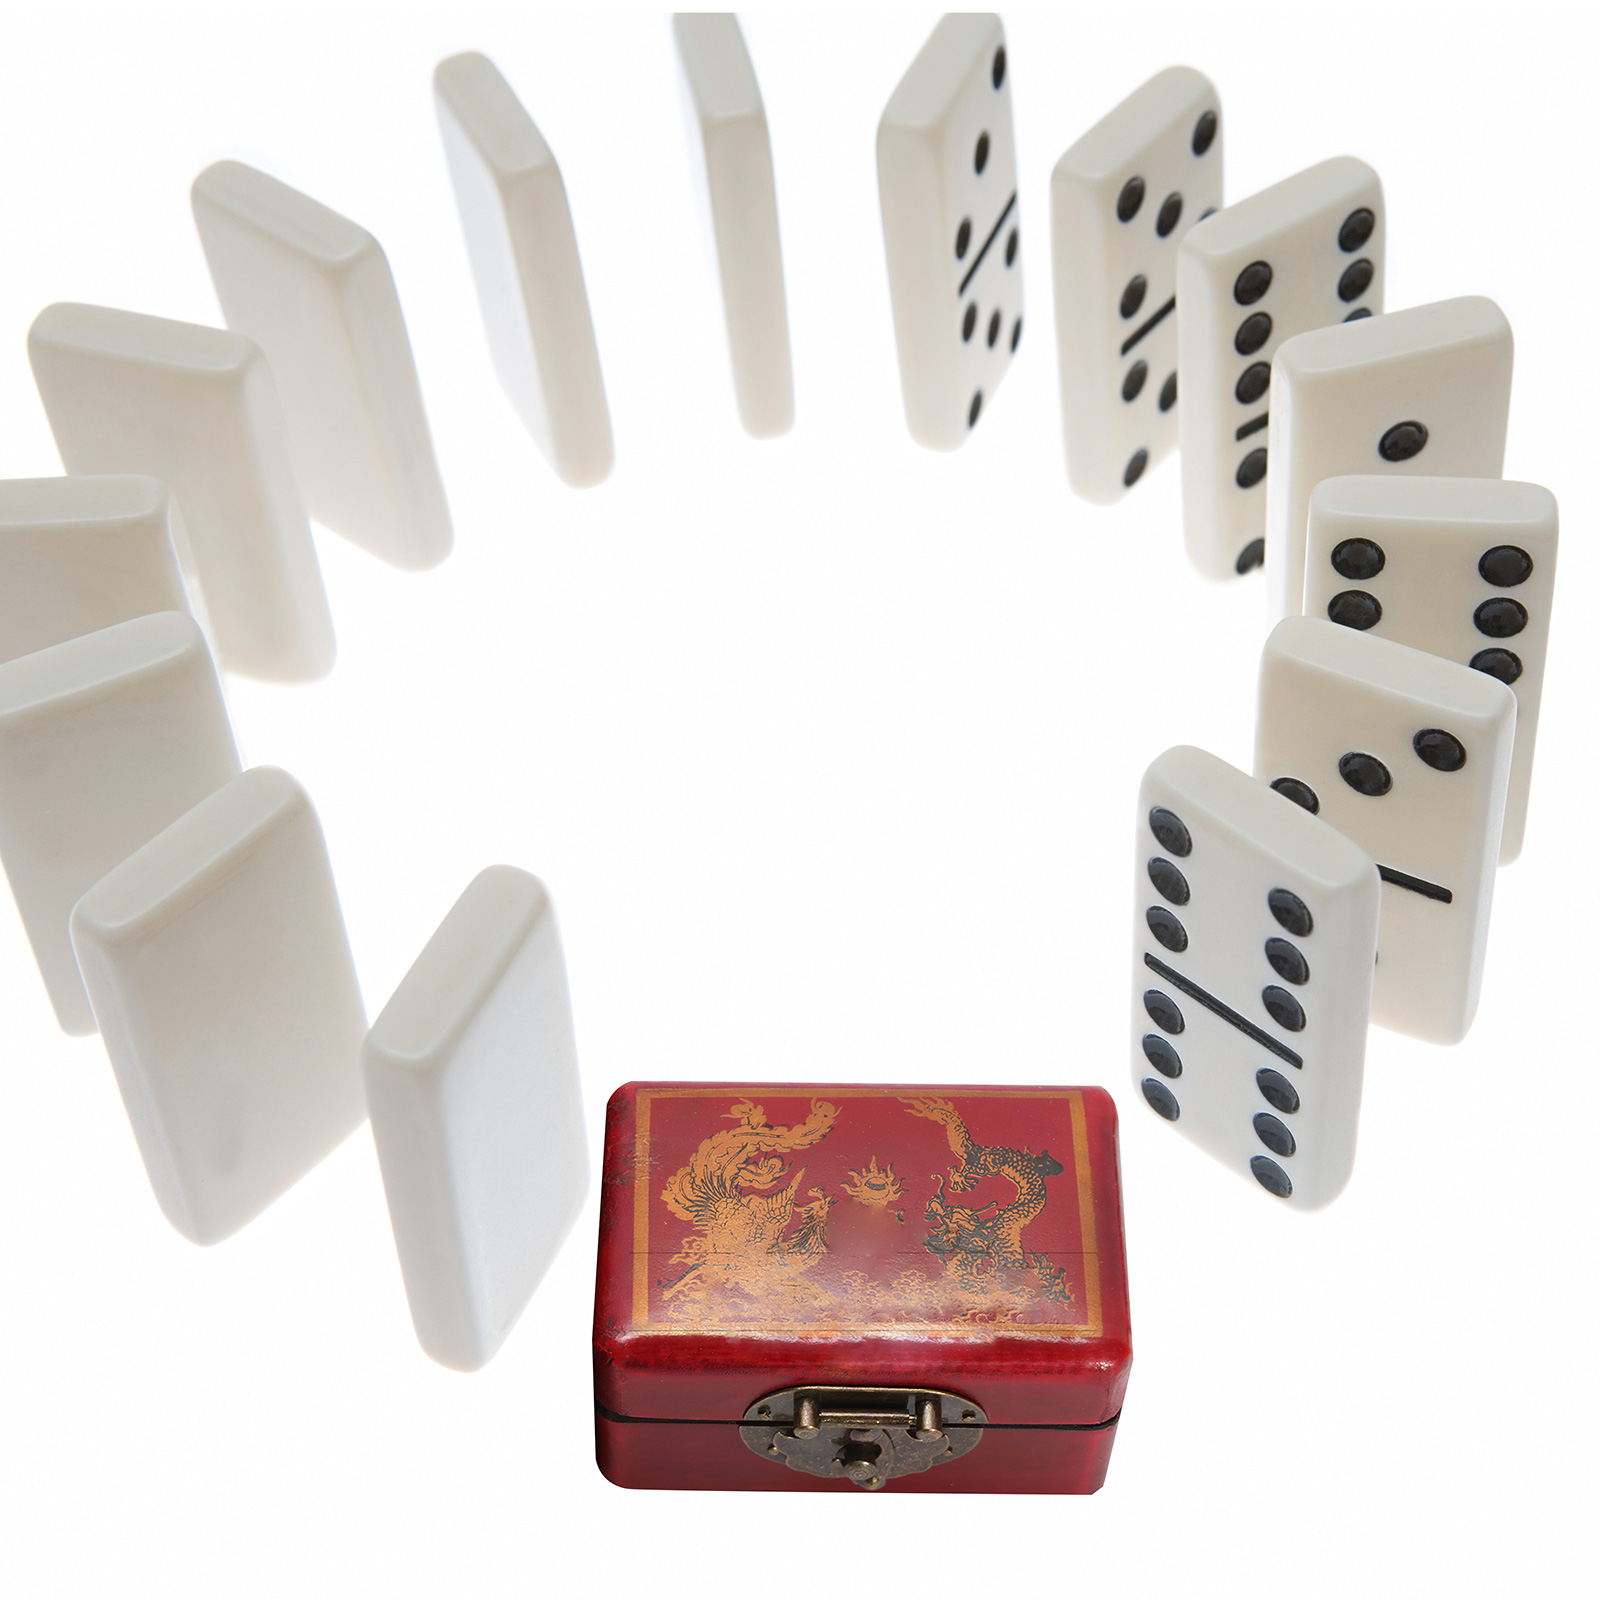 28 Pieces Educational Portable Antique Domino Box Handmade Retro Dominoes Set Game Set Classic Dominoes For Children Adult